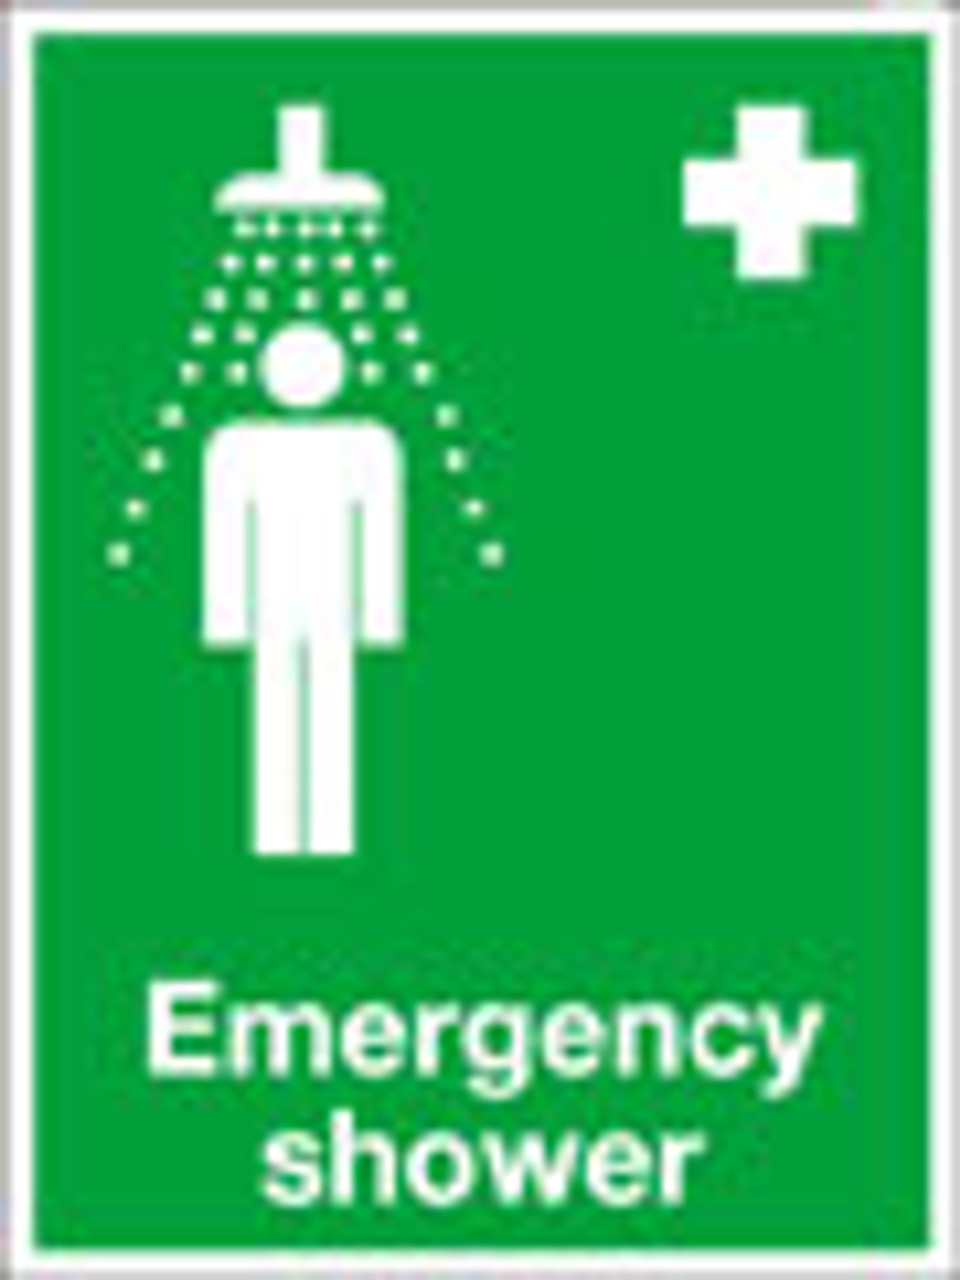 Emergency shower sign